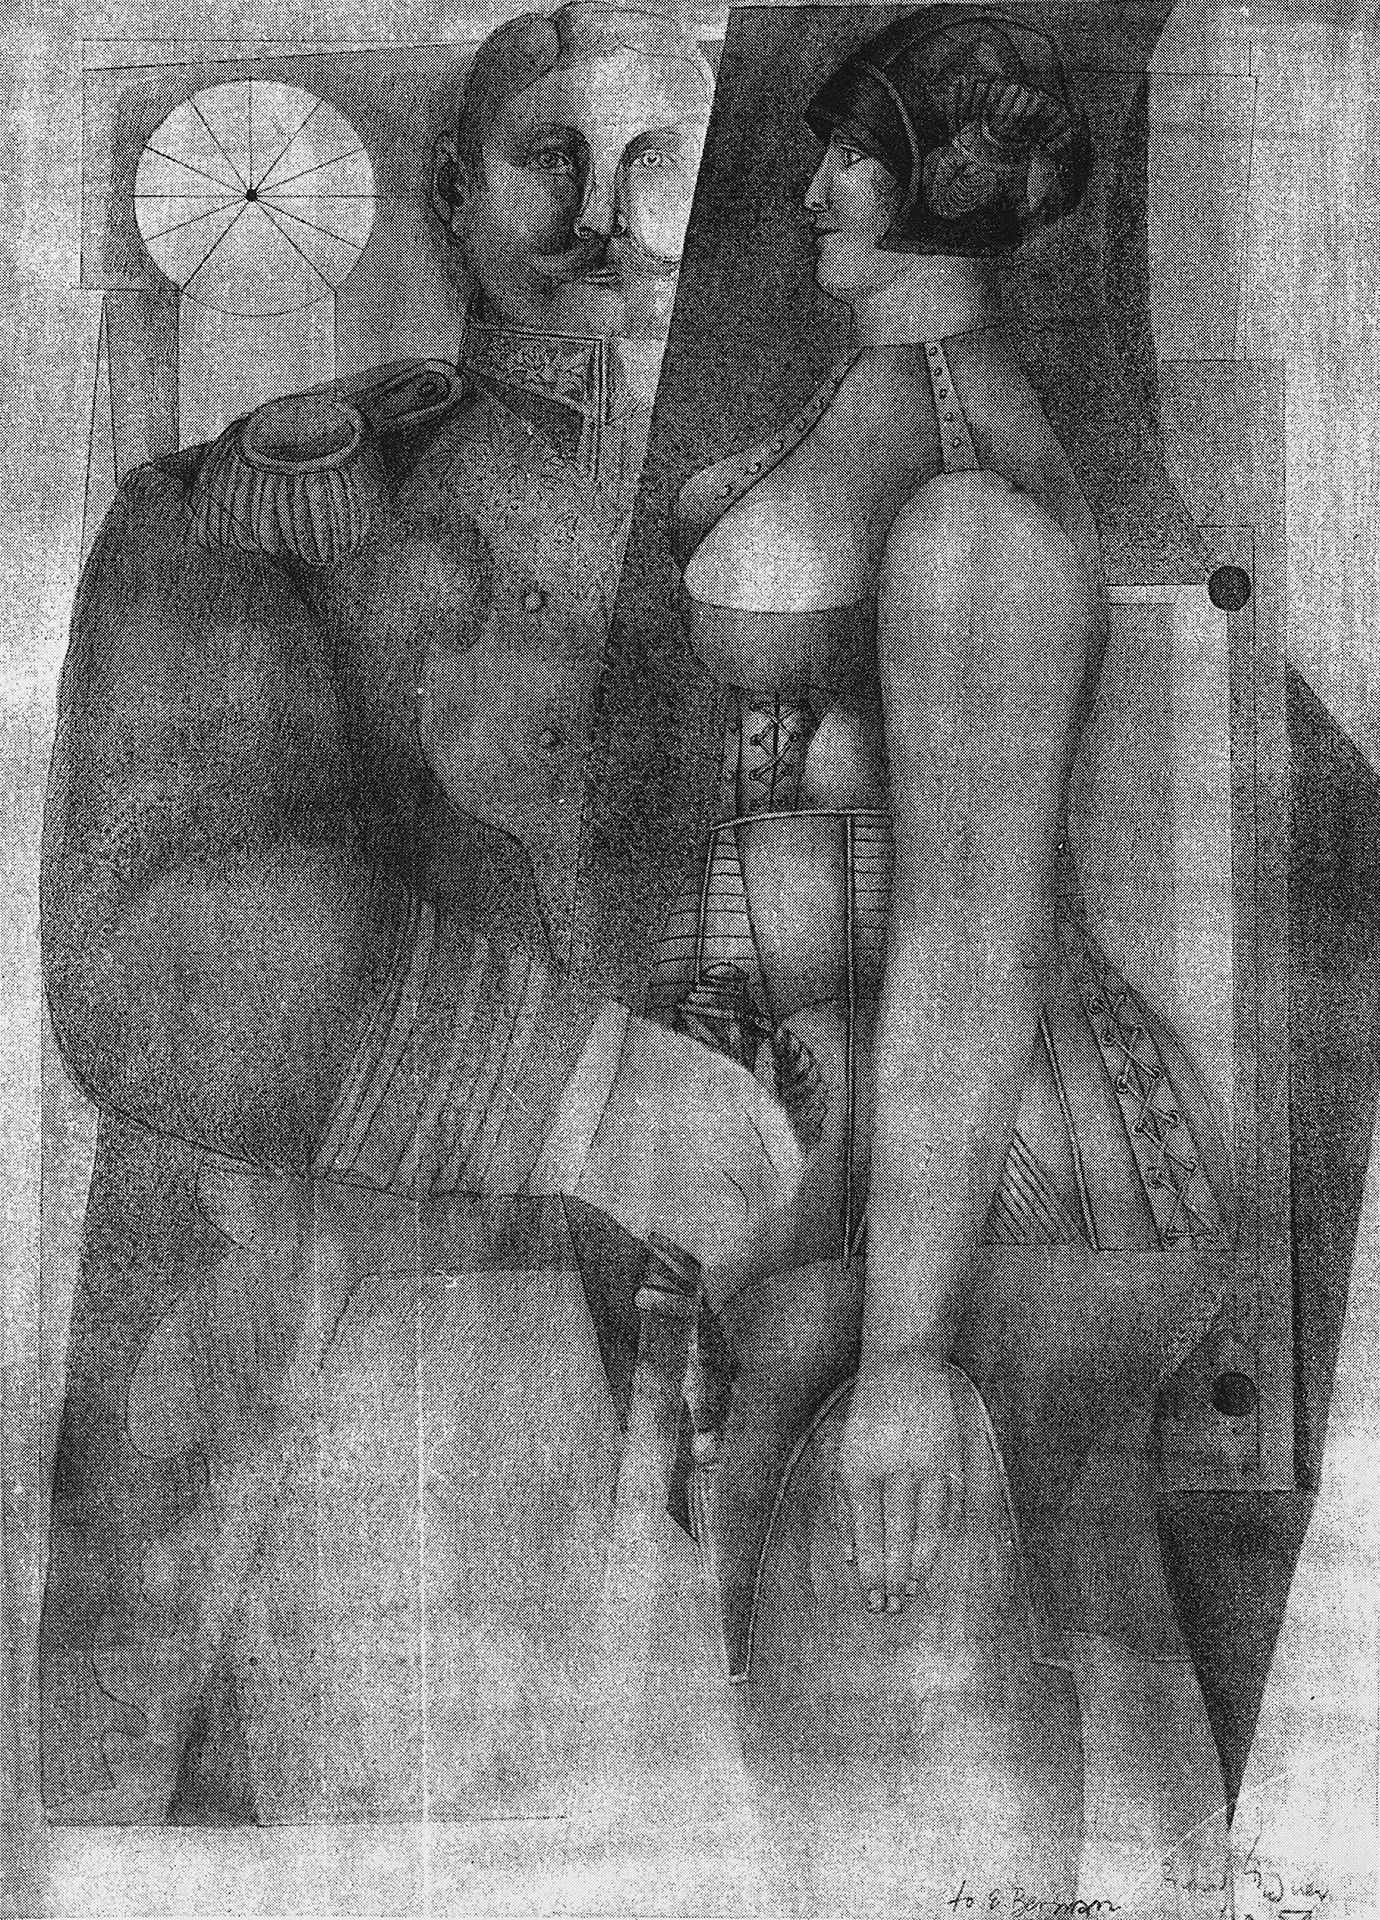 General with Model, 1954